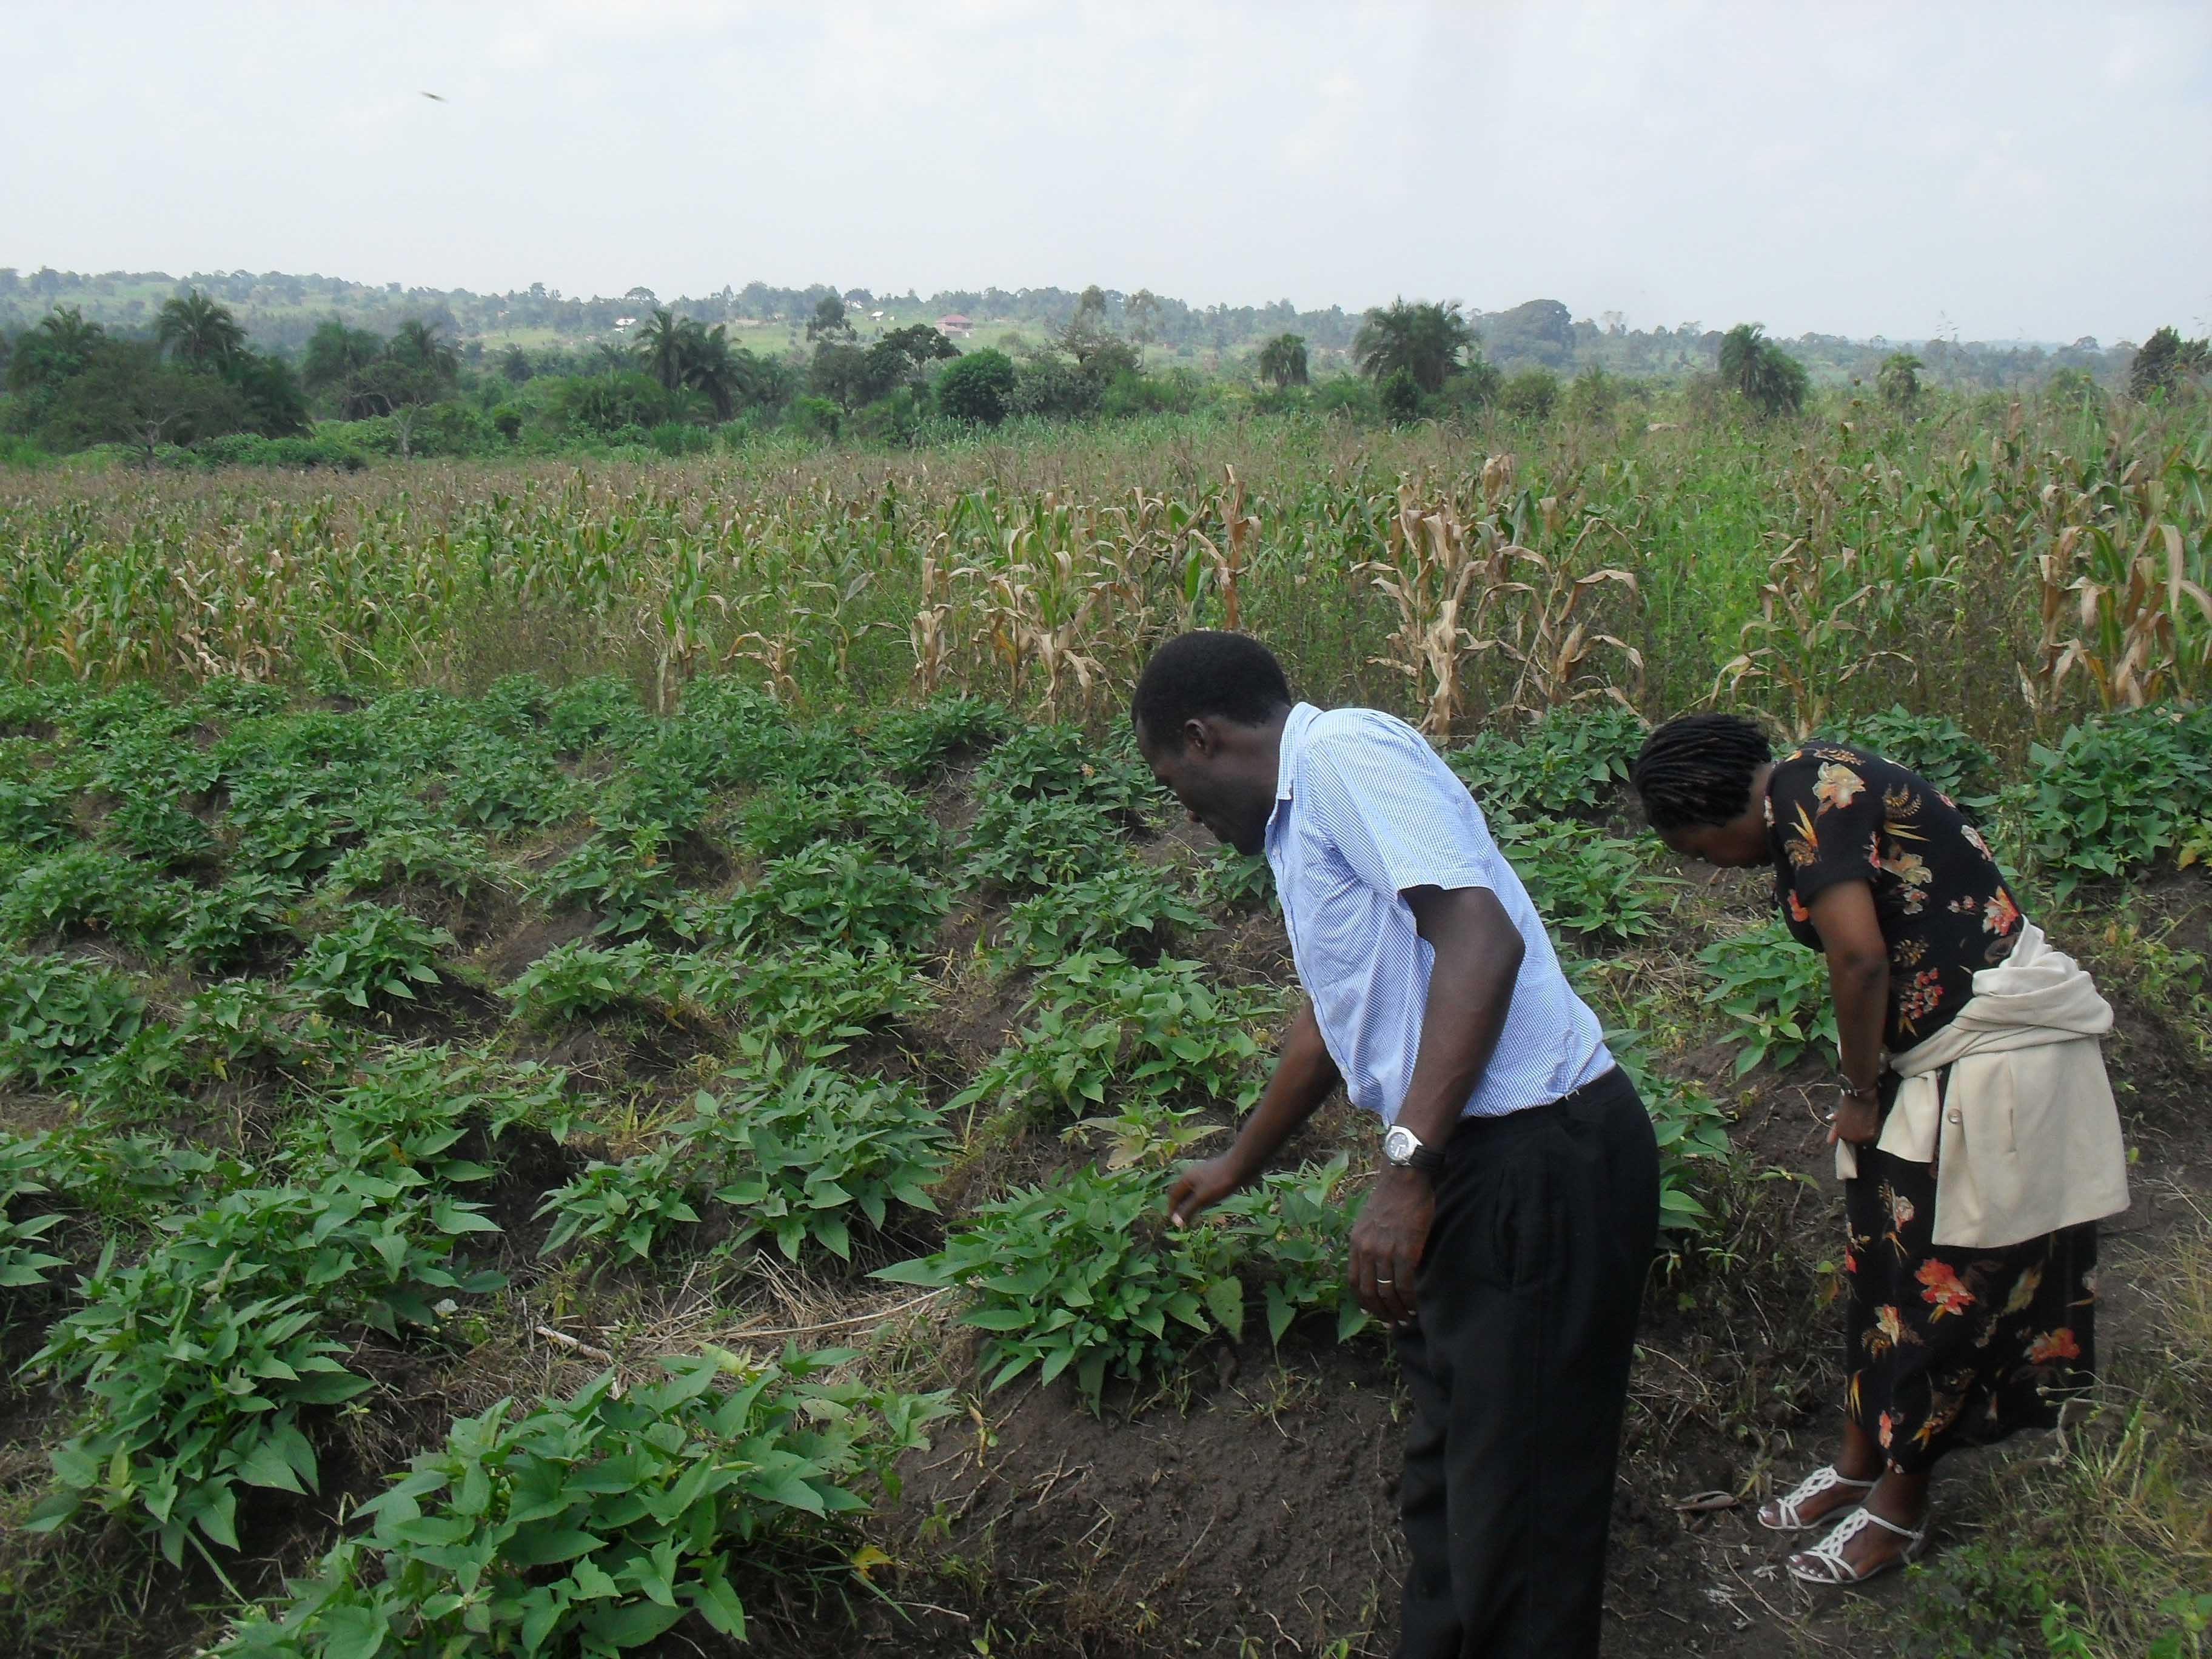 W-Maize-and-Sweet-Potatoes-Ready-for-Harvest-2012